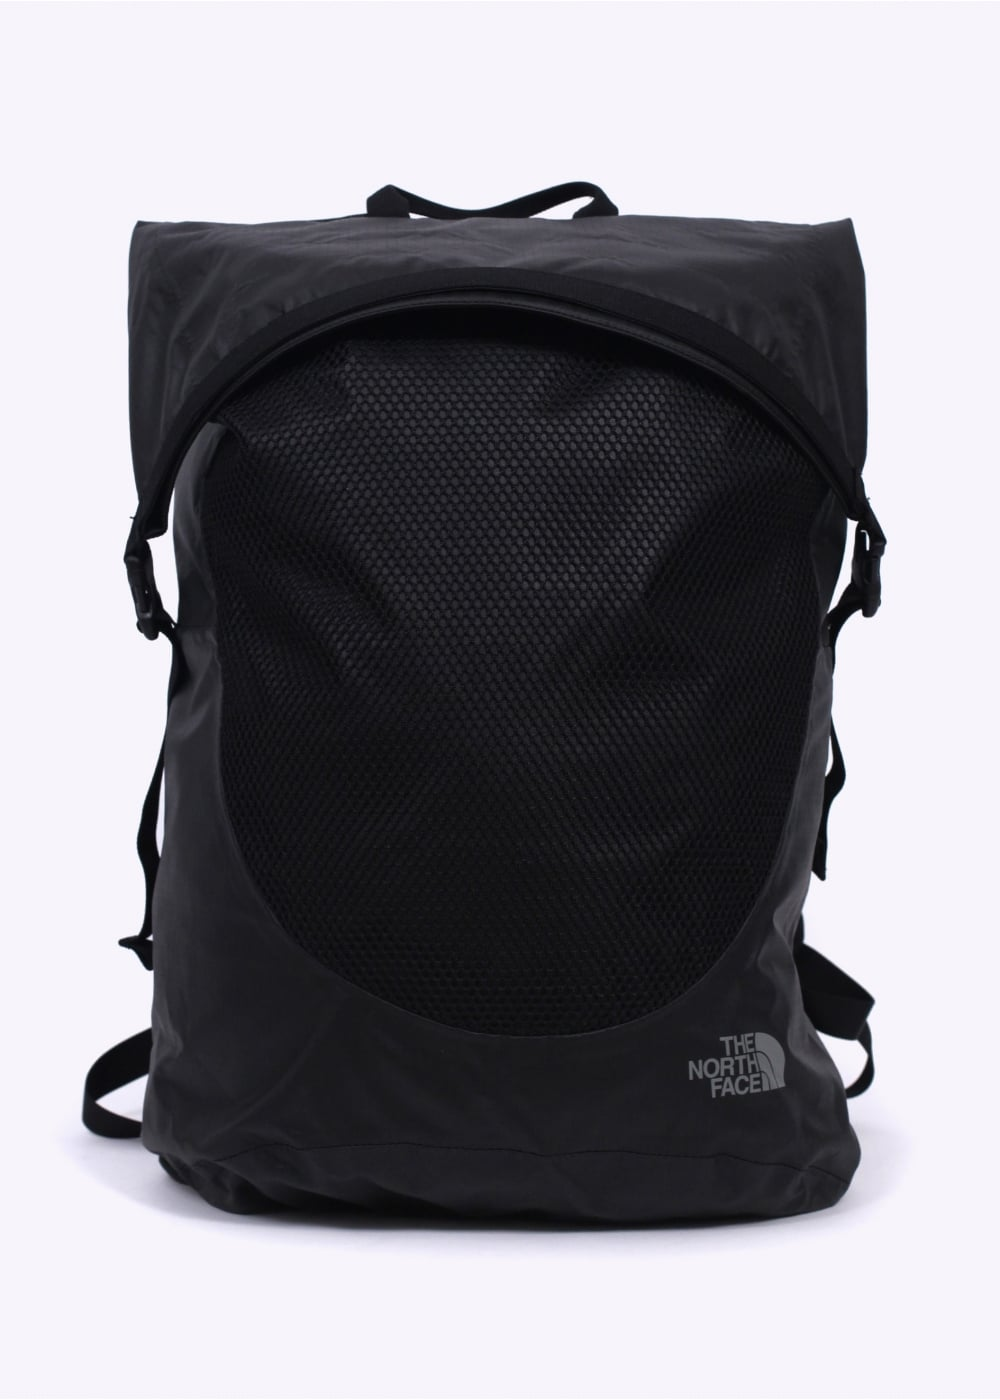 The North Face Waterproof Daypack - Black - Bags from Triads UK 4d32594a8fc0